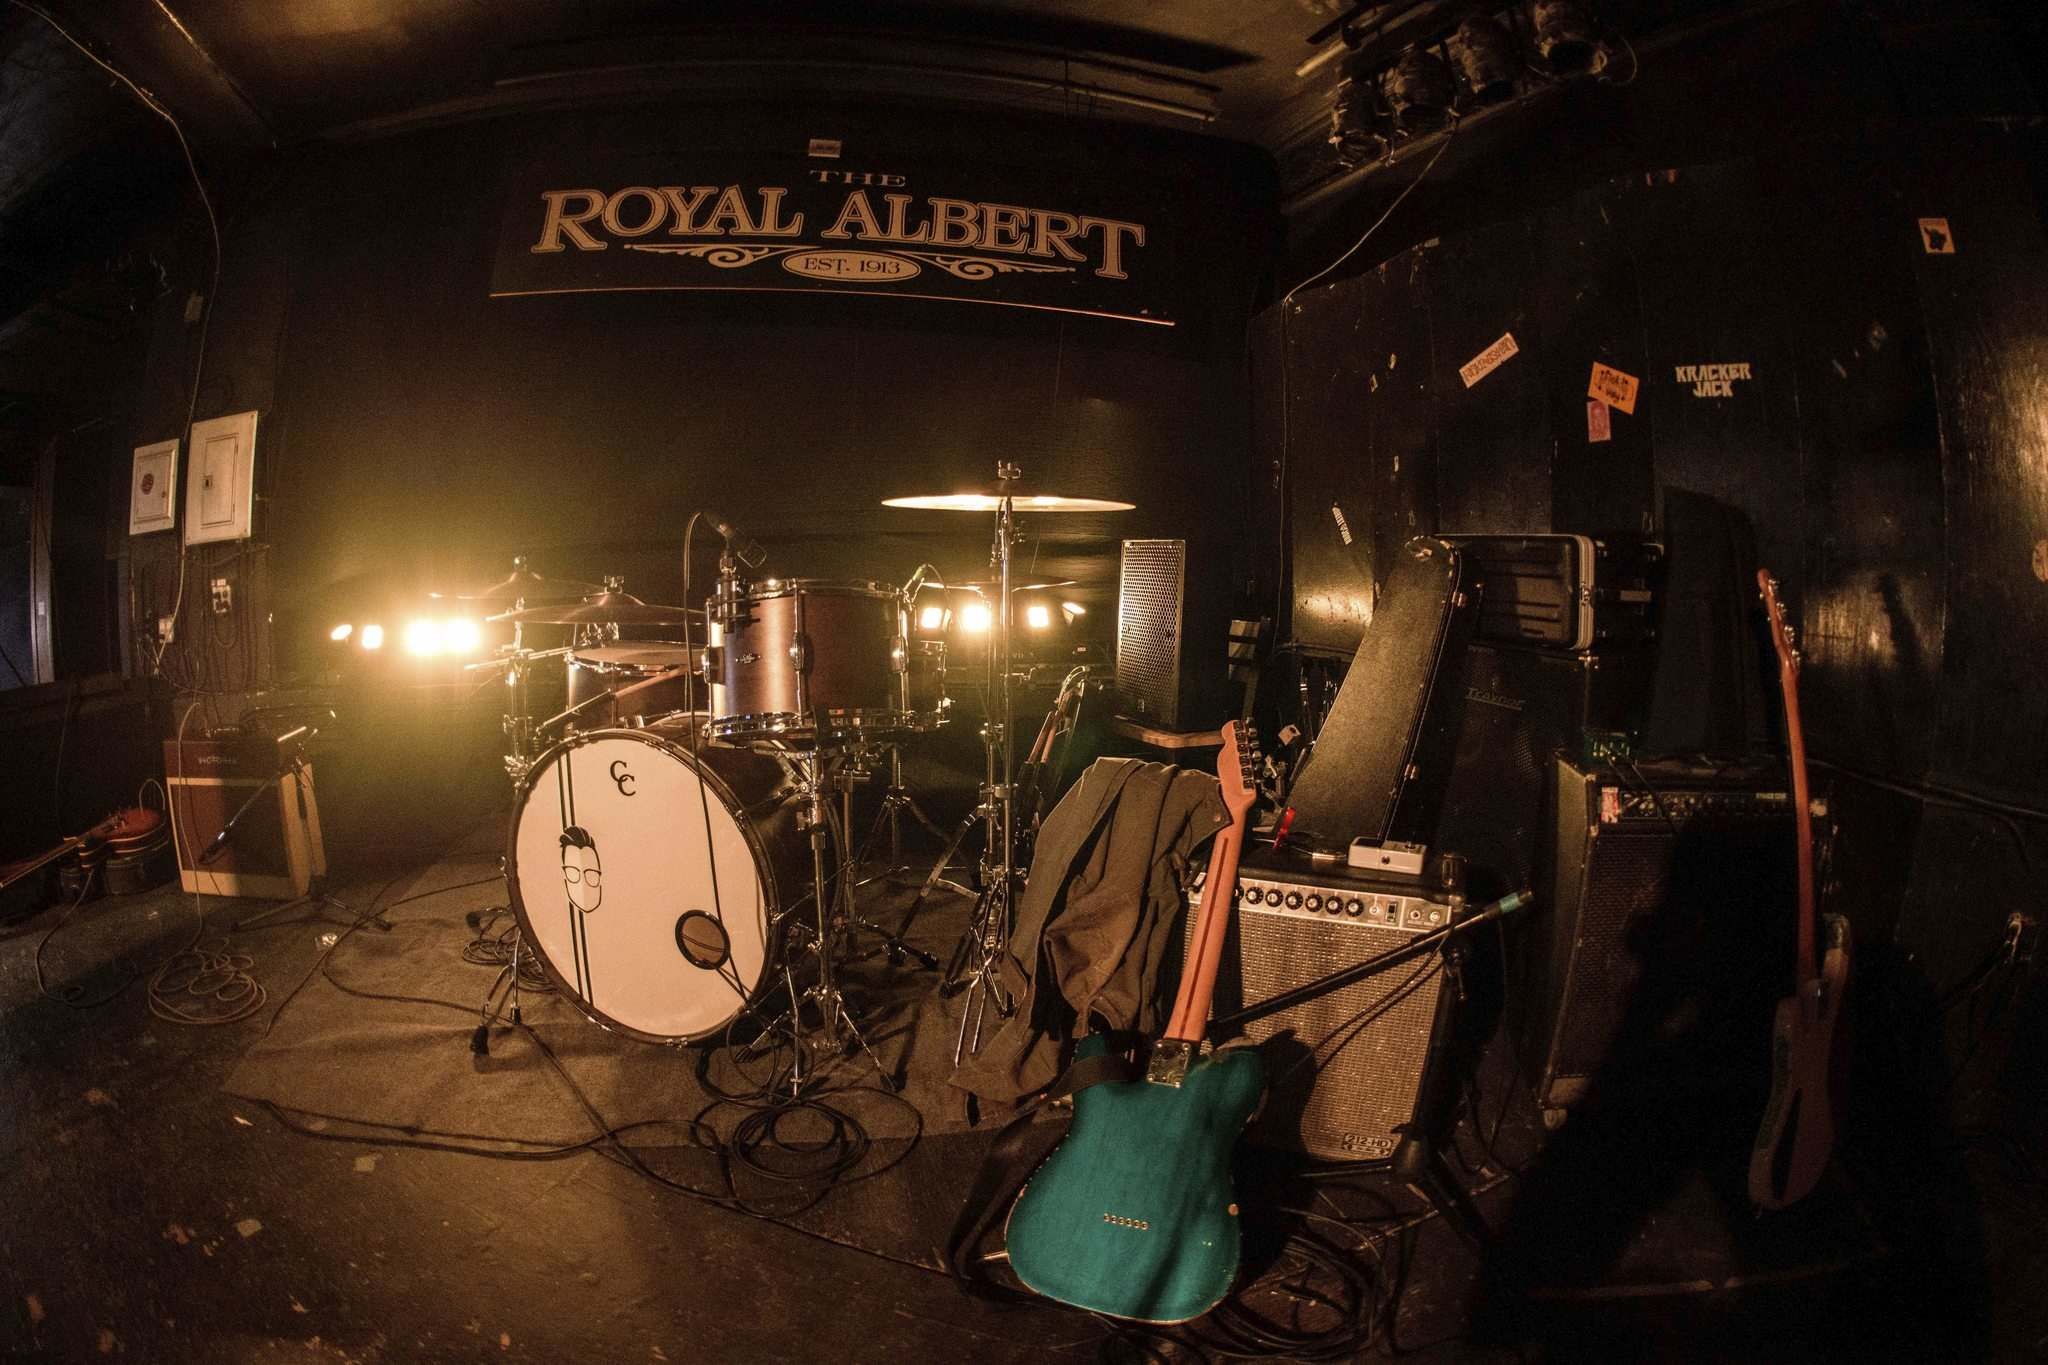 MIKE SUDOMA / WINNIPEG FREE PRESS</p><p>Instruments are at the ready as the Royal Albert prepares to reopen as a music venue Friday.</p>